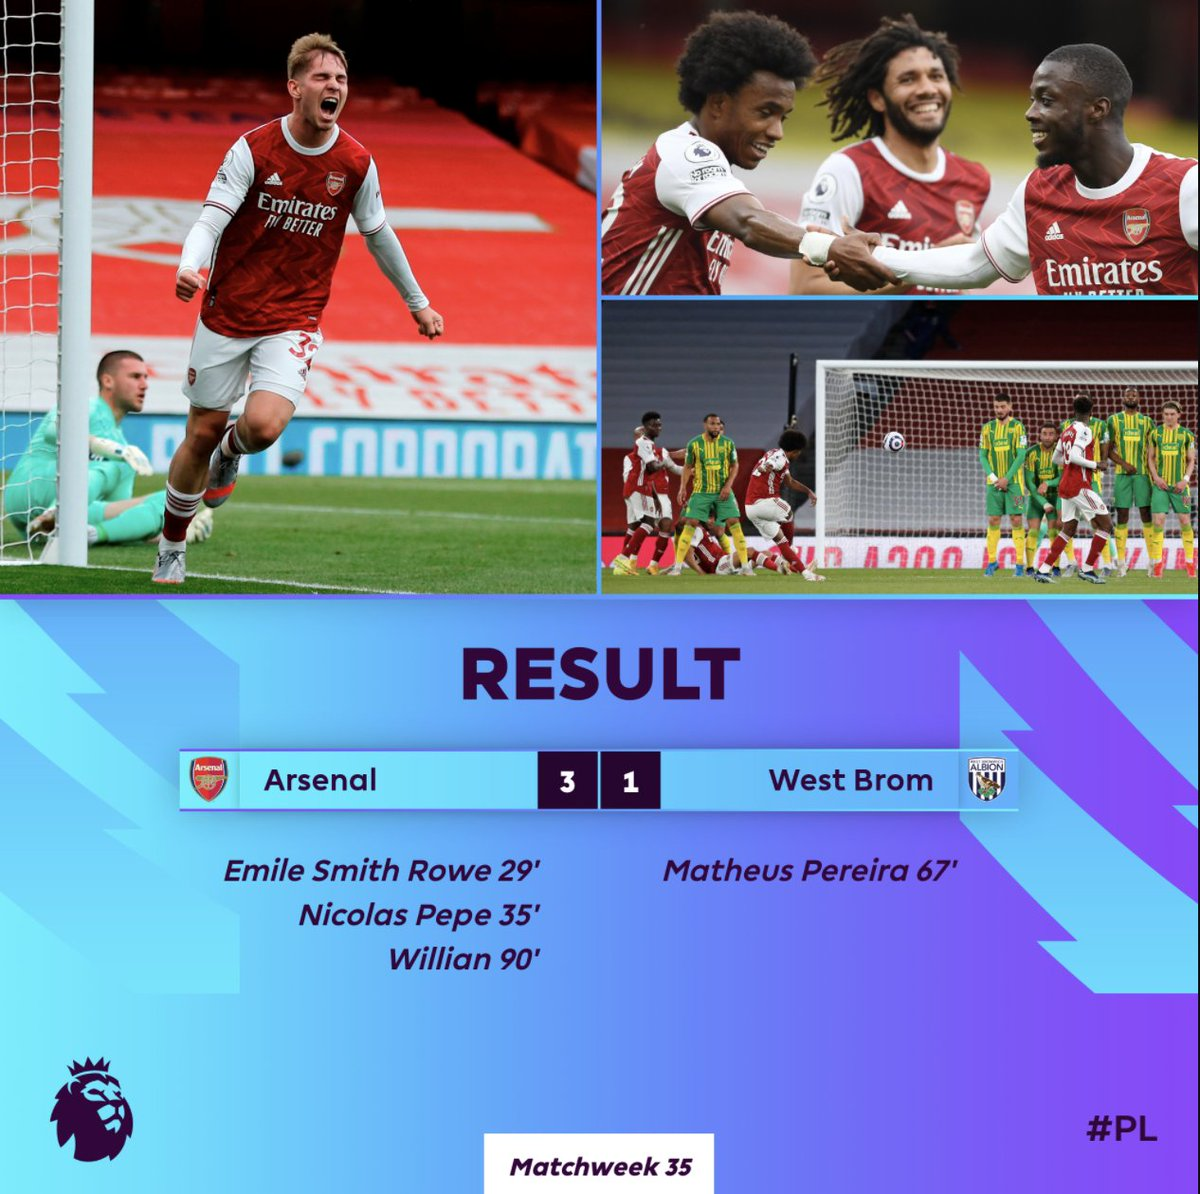 @premierleague's photo on West Brom